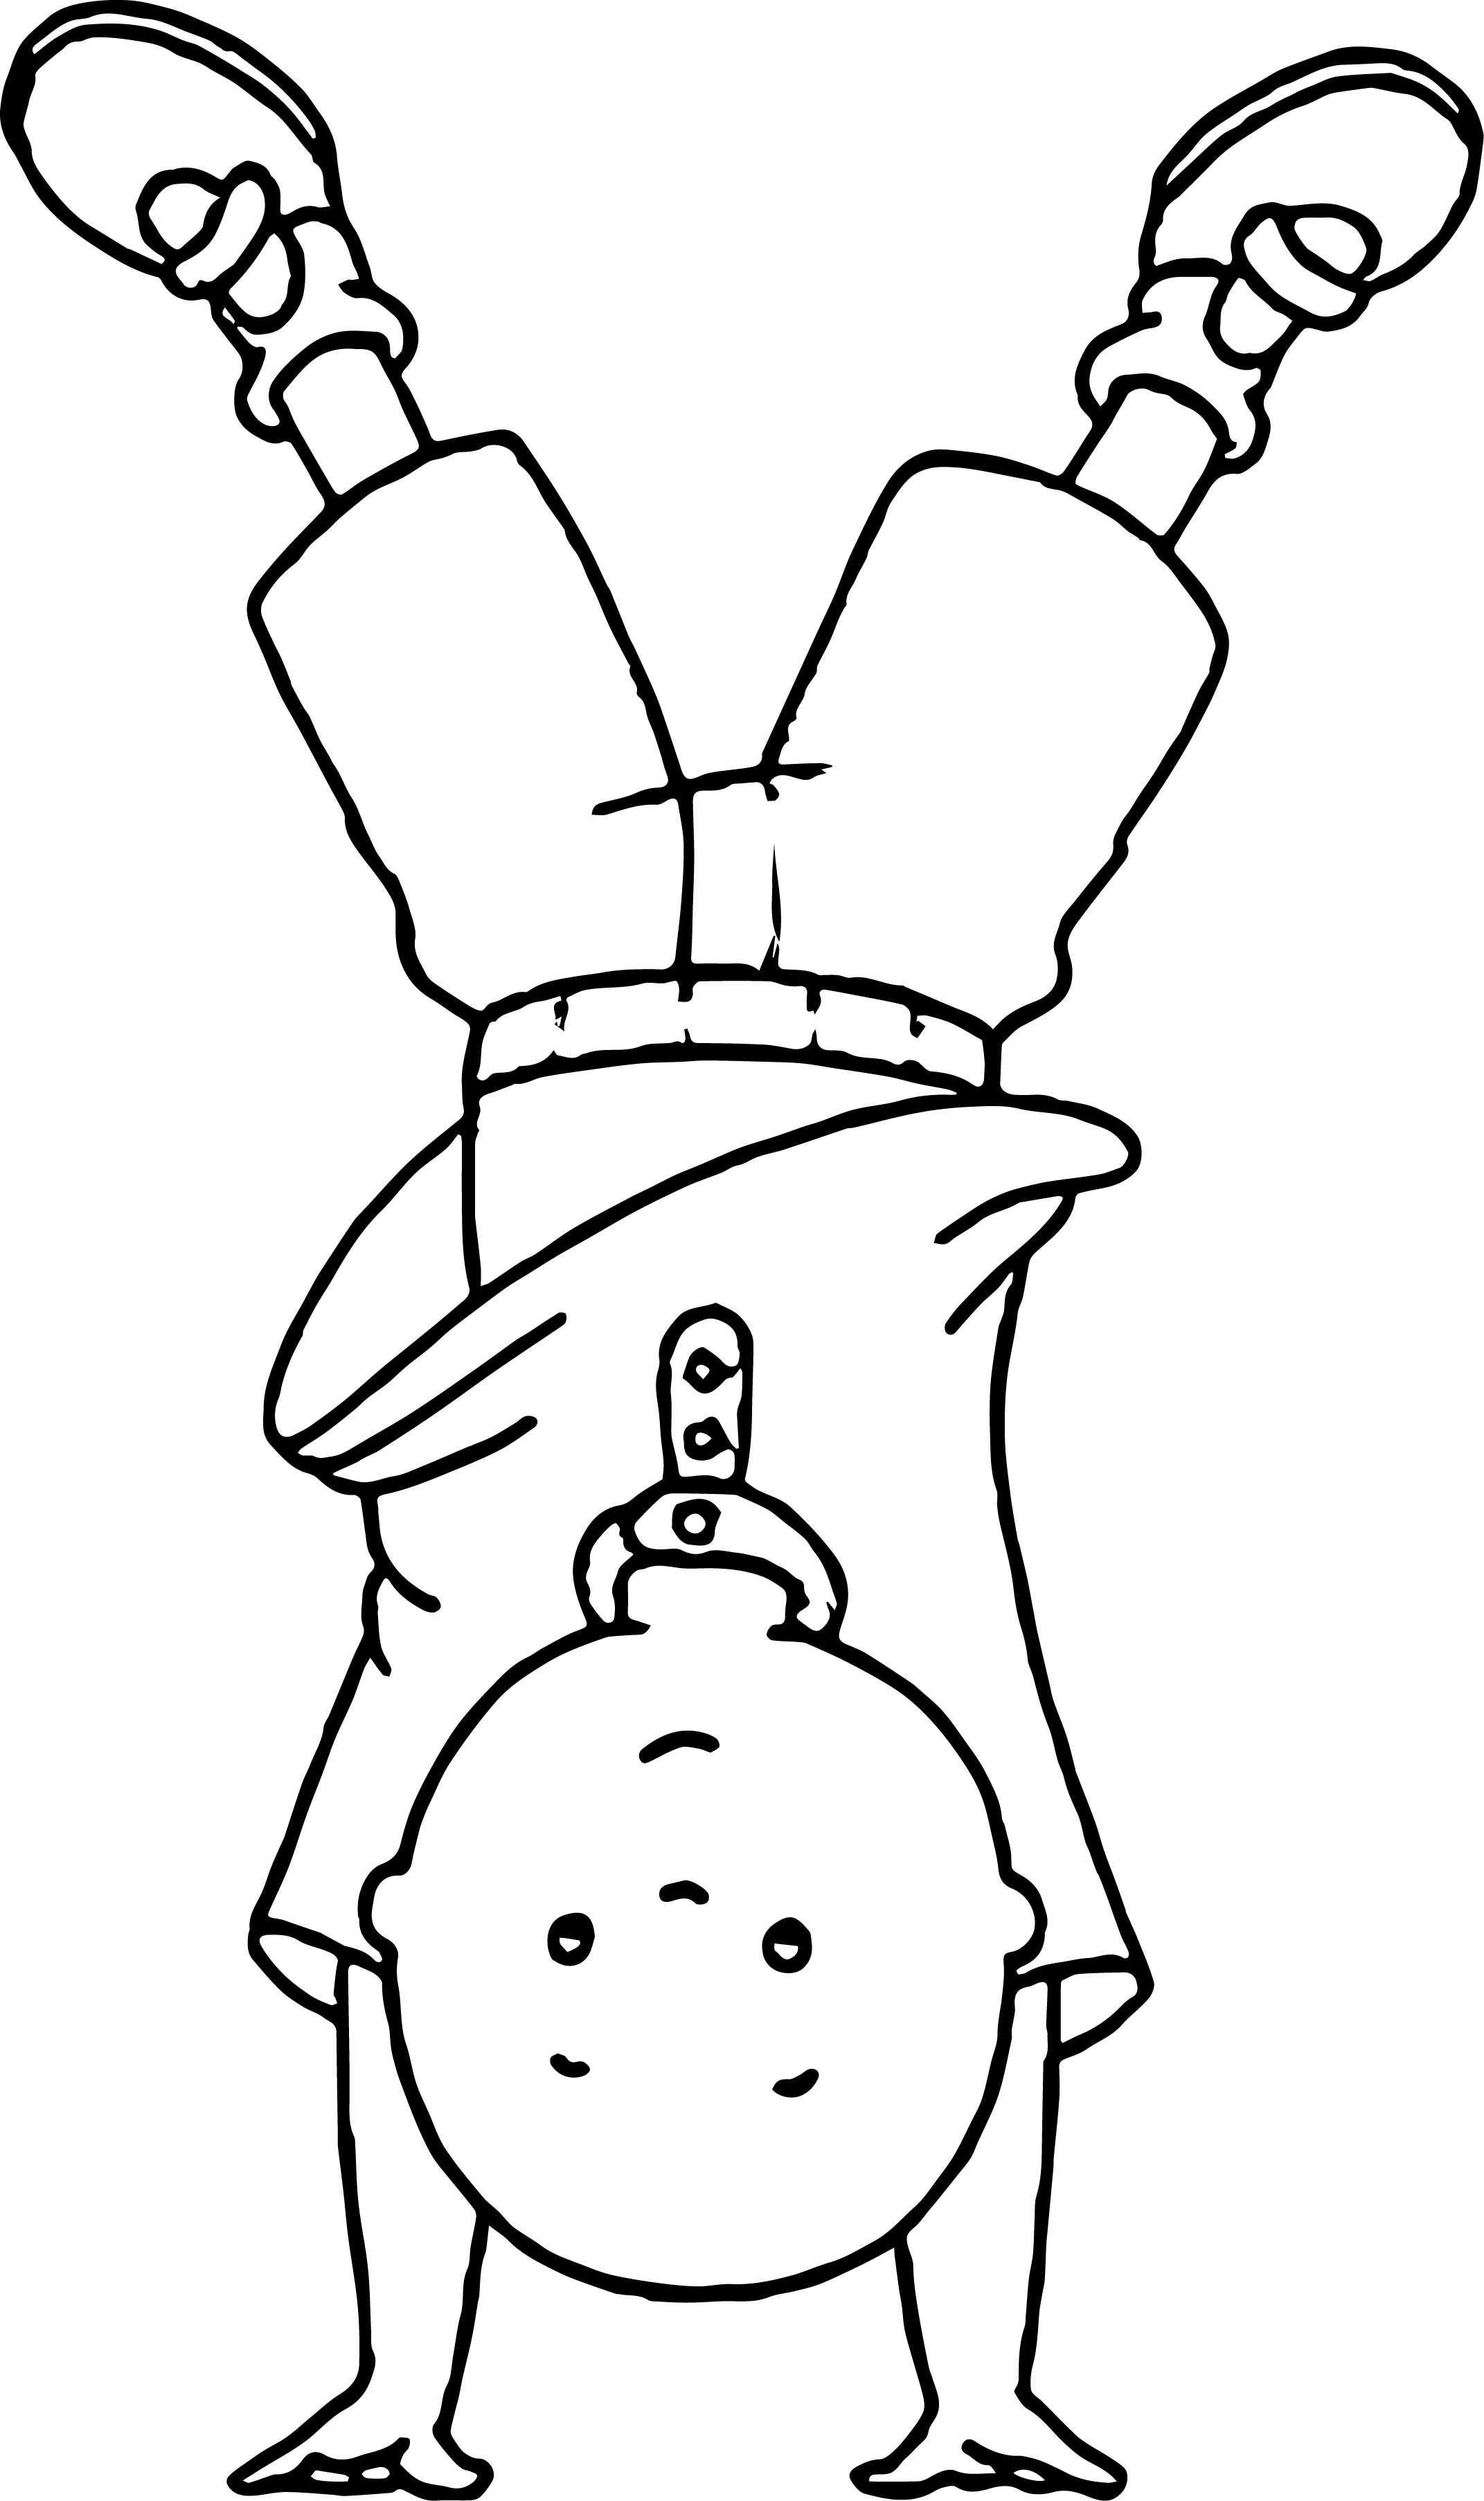 Caillou Tumble Coloring Page